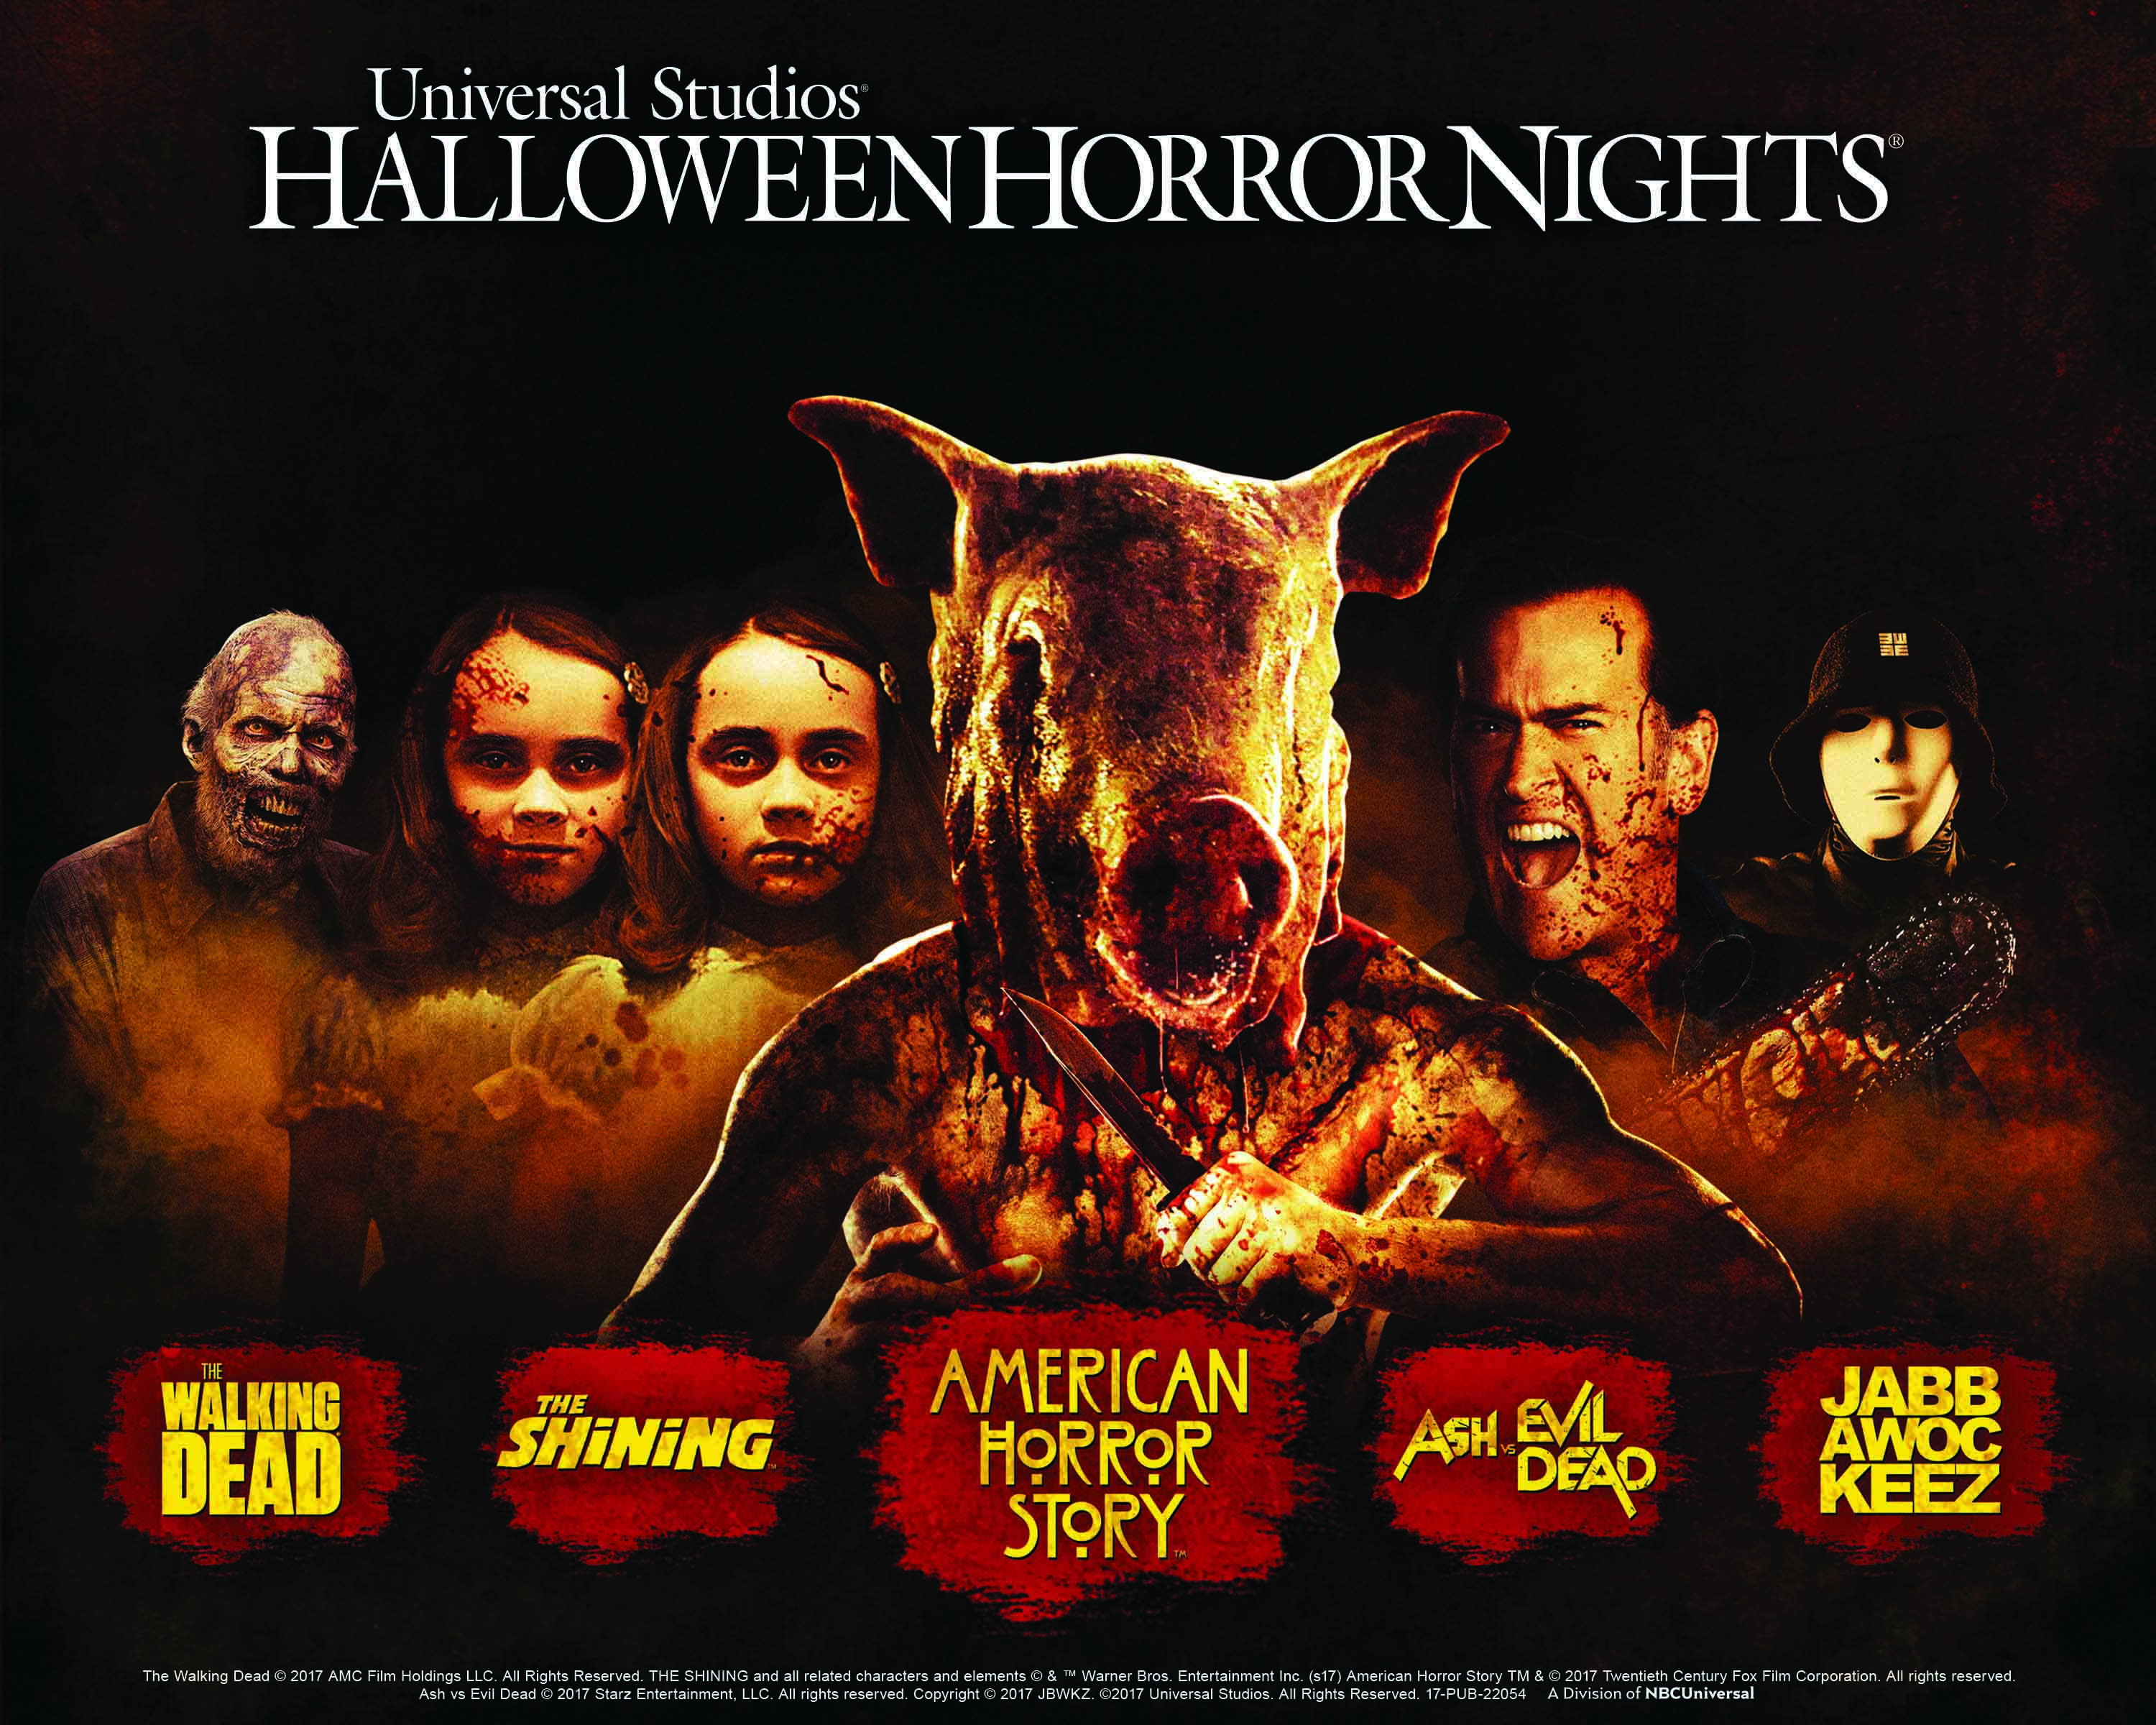 Halloween Horror Nights 2020 Cost Ticket pricing and packages released for Halloween Horror Nights